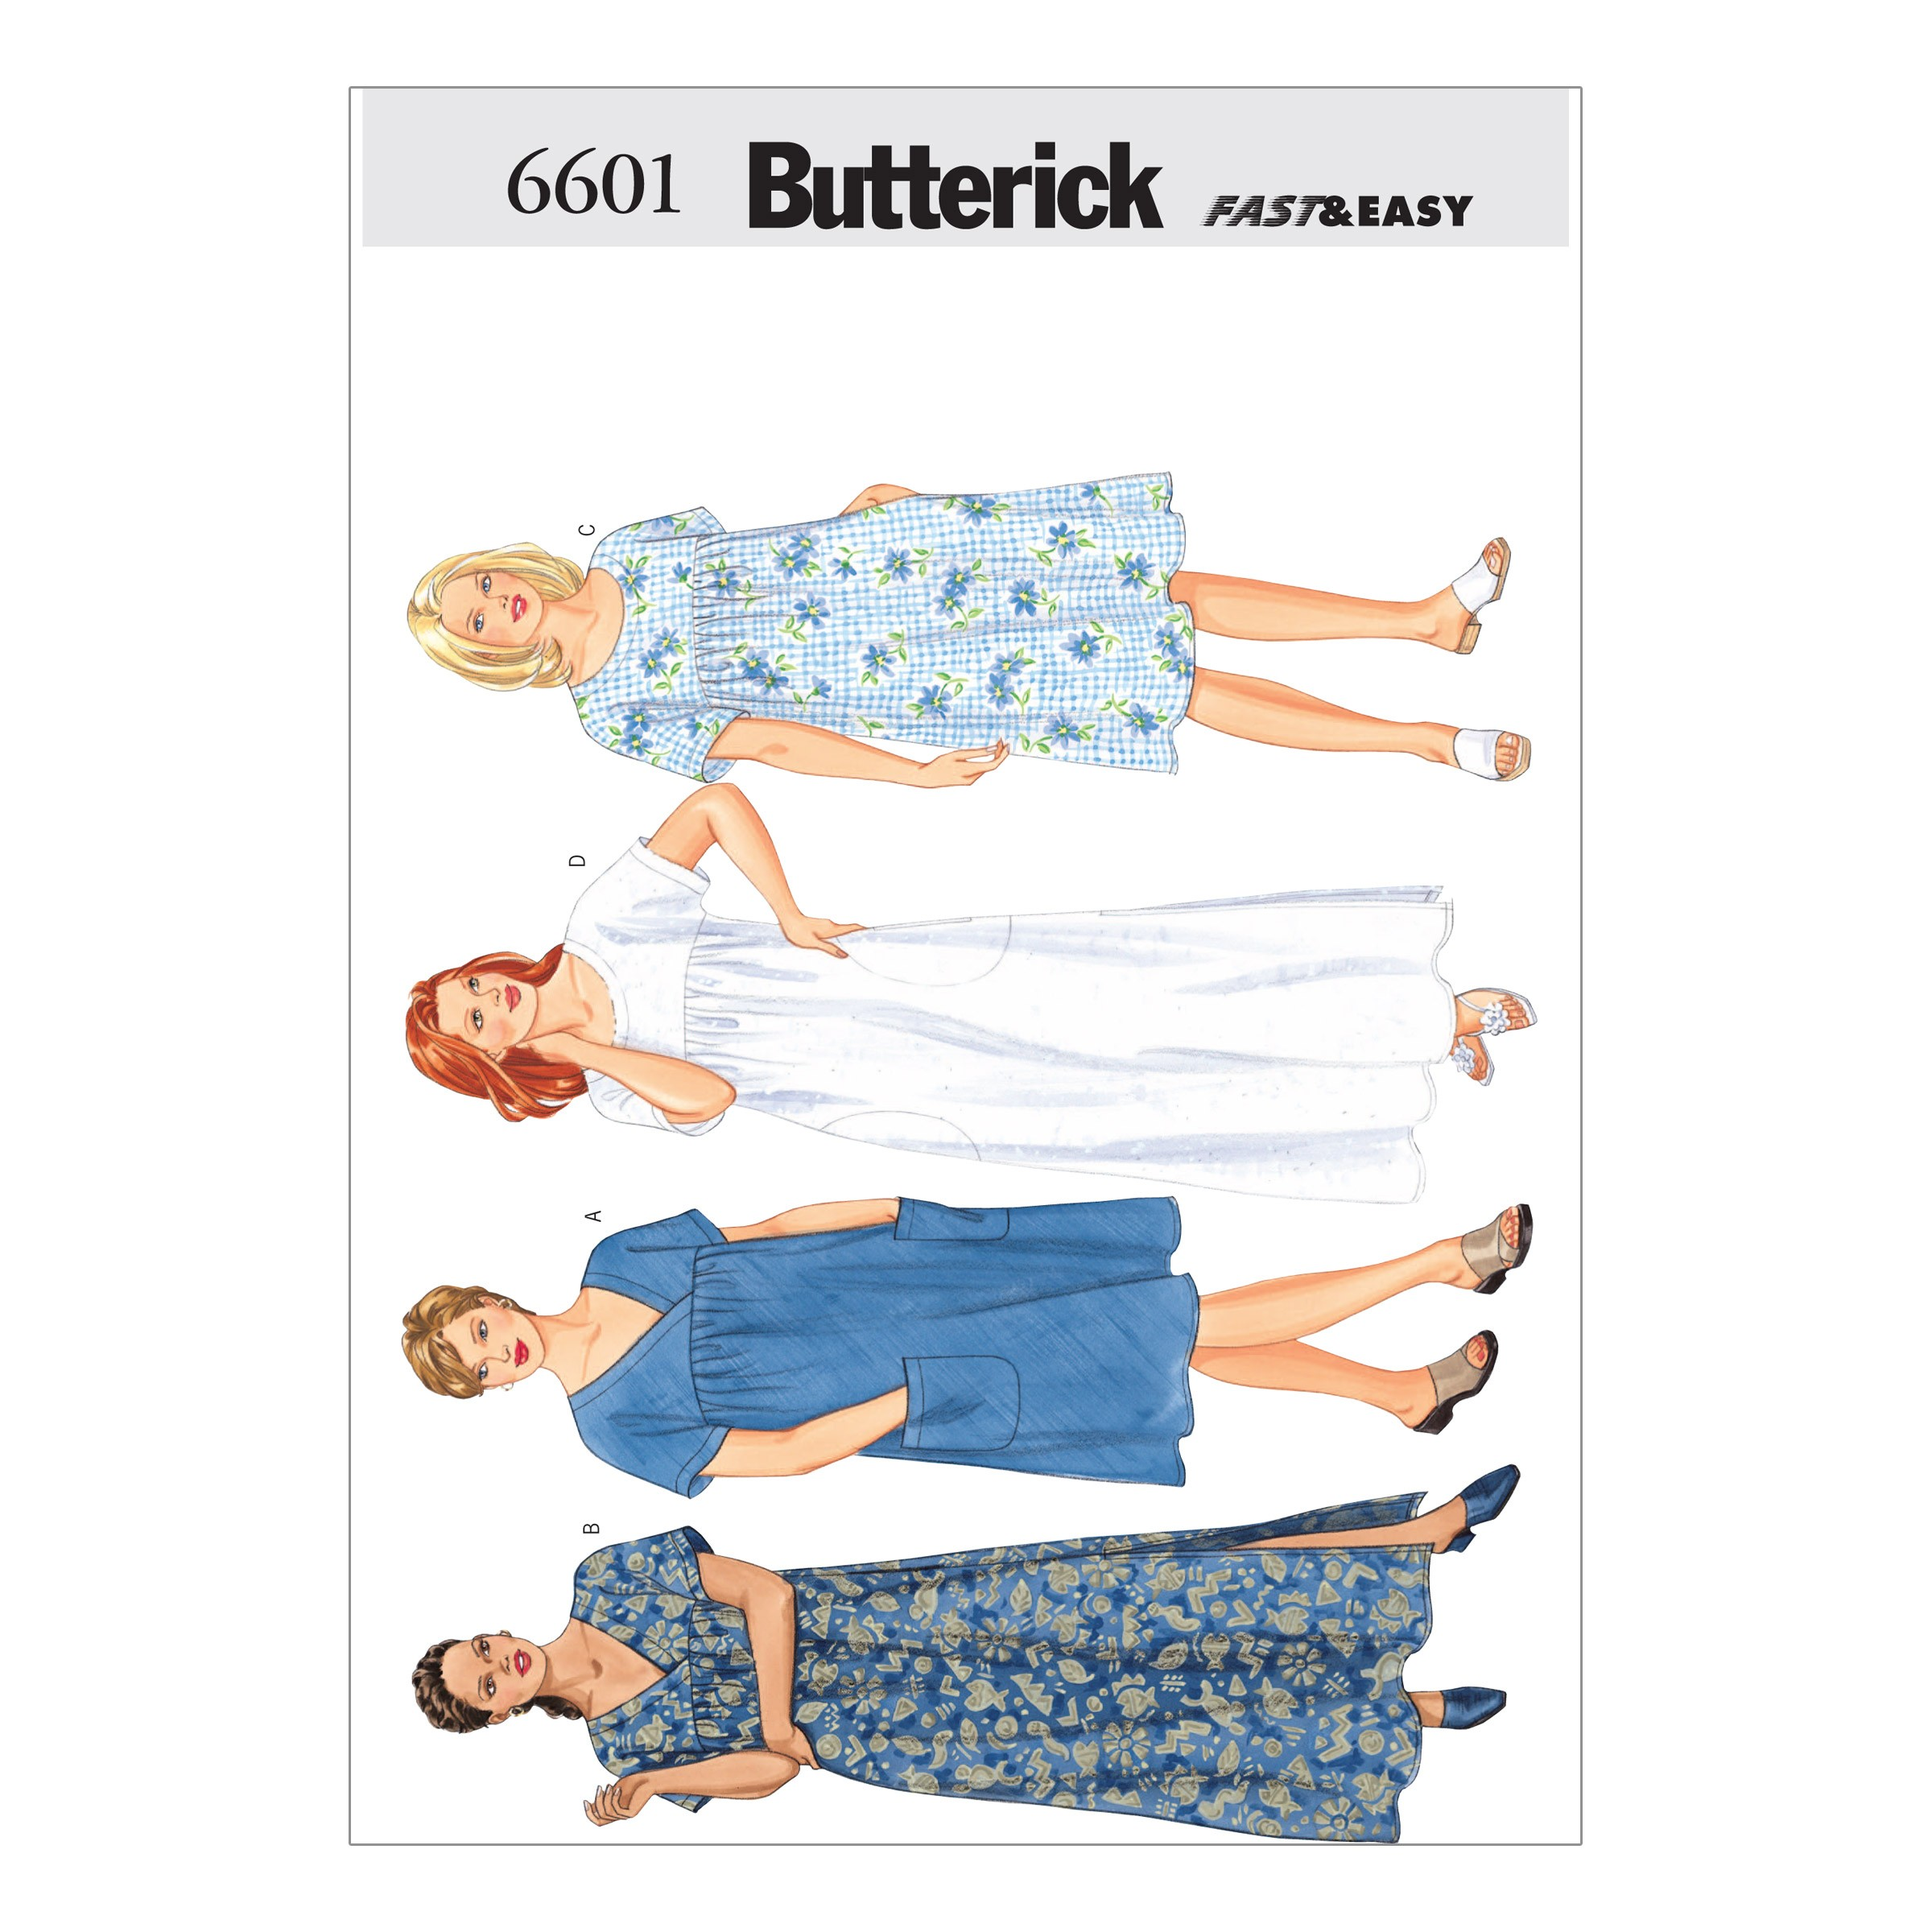 Butterick Sewing Pattern 6601 Misses' Casual Loungewear Separates Mix and Match